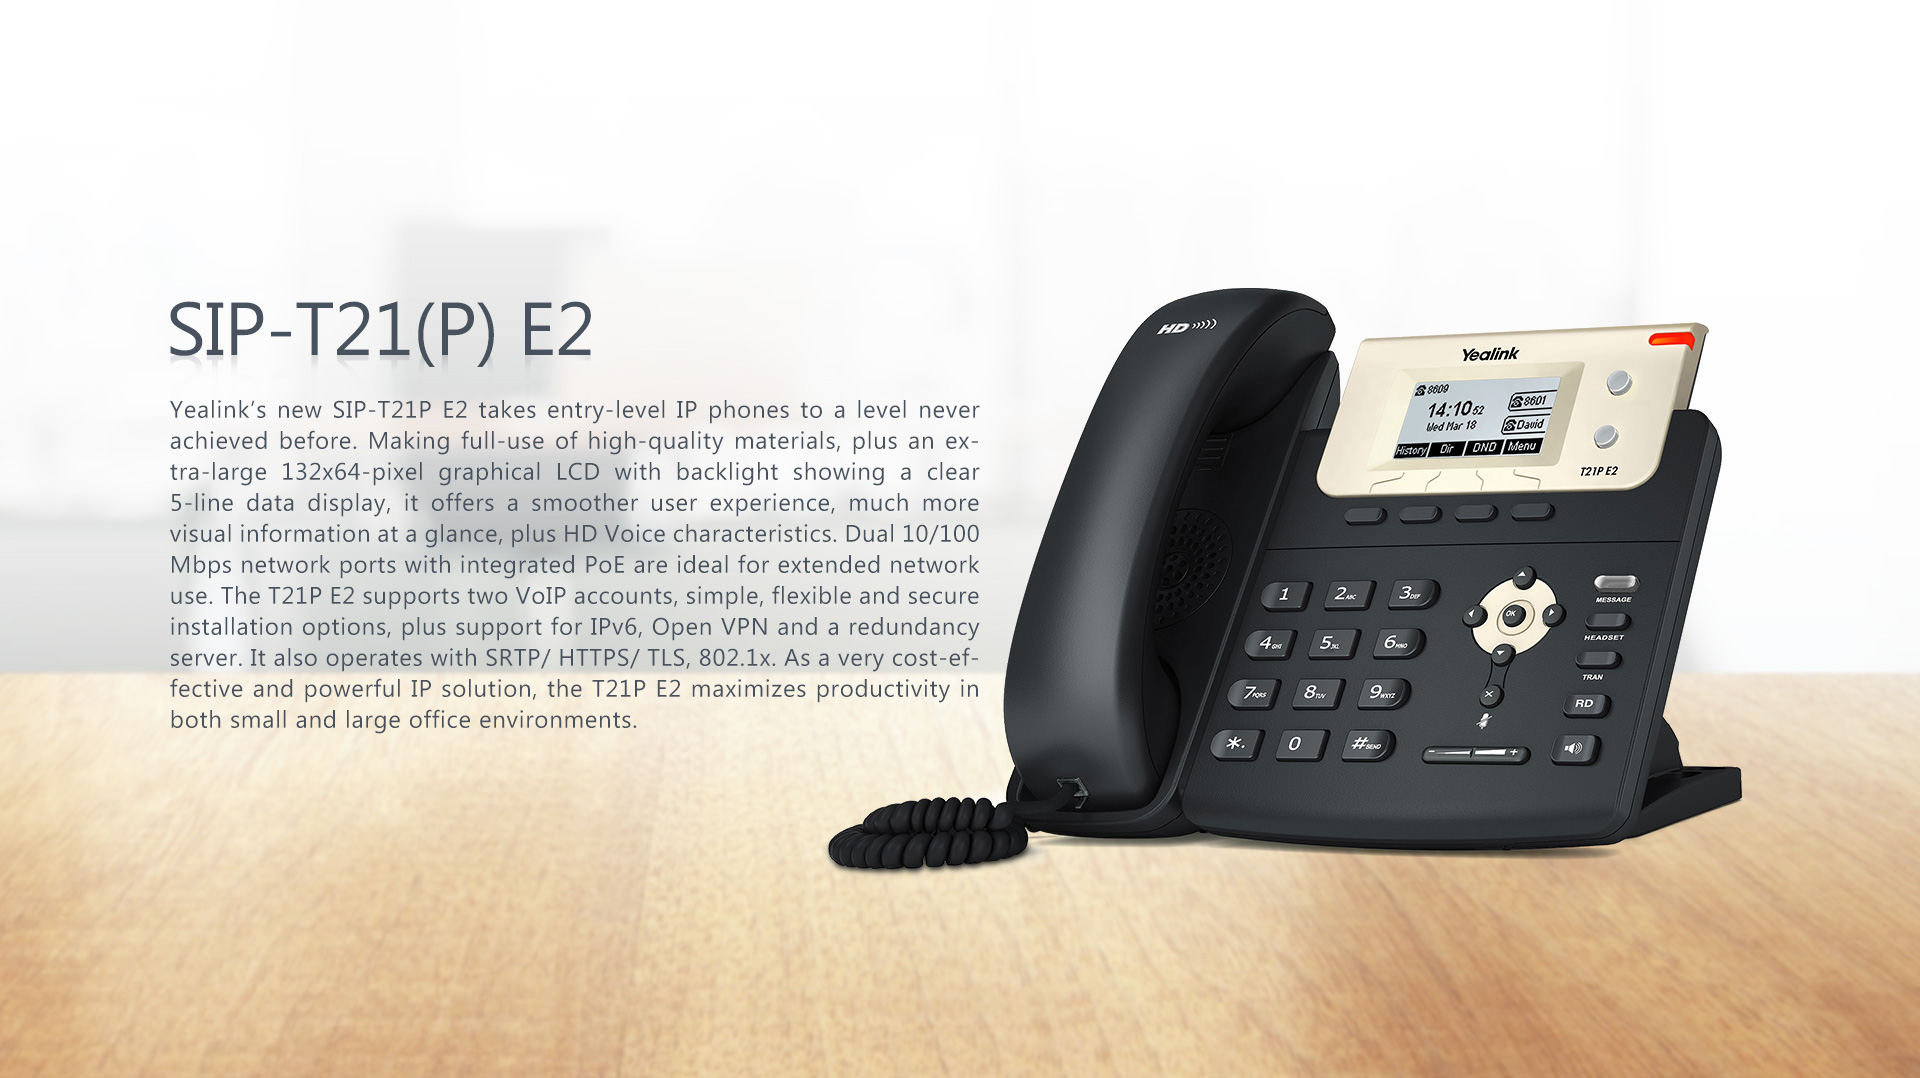 SIP-T21(P) E2_T2 Series Phones_Products